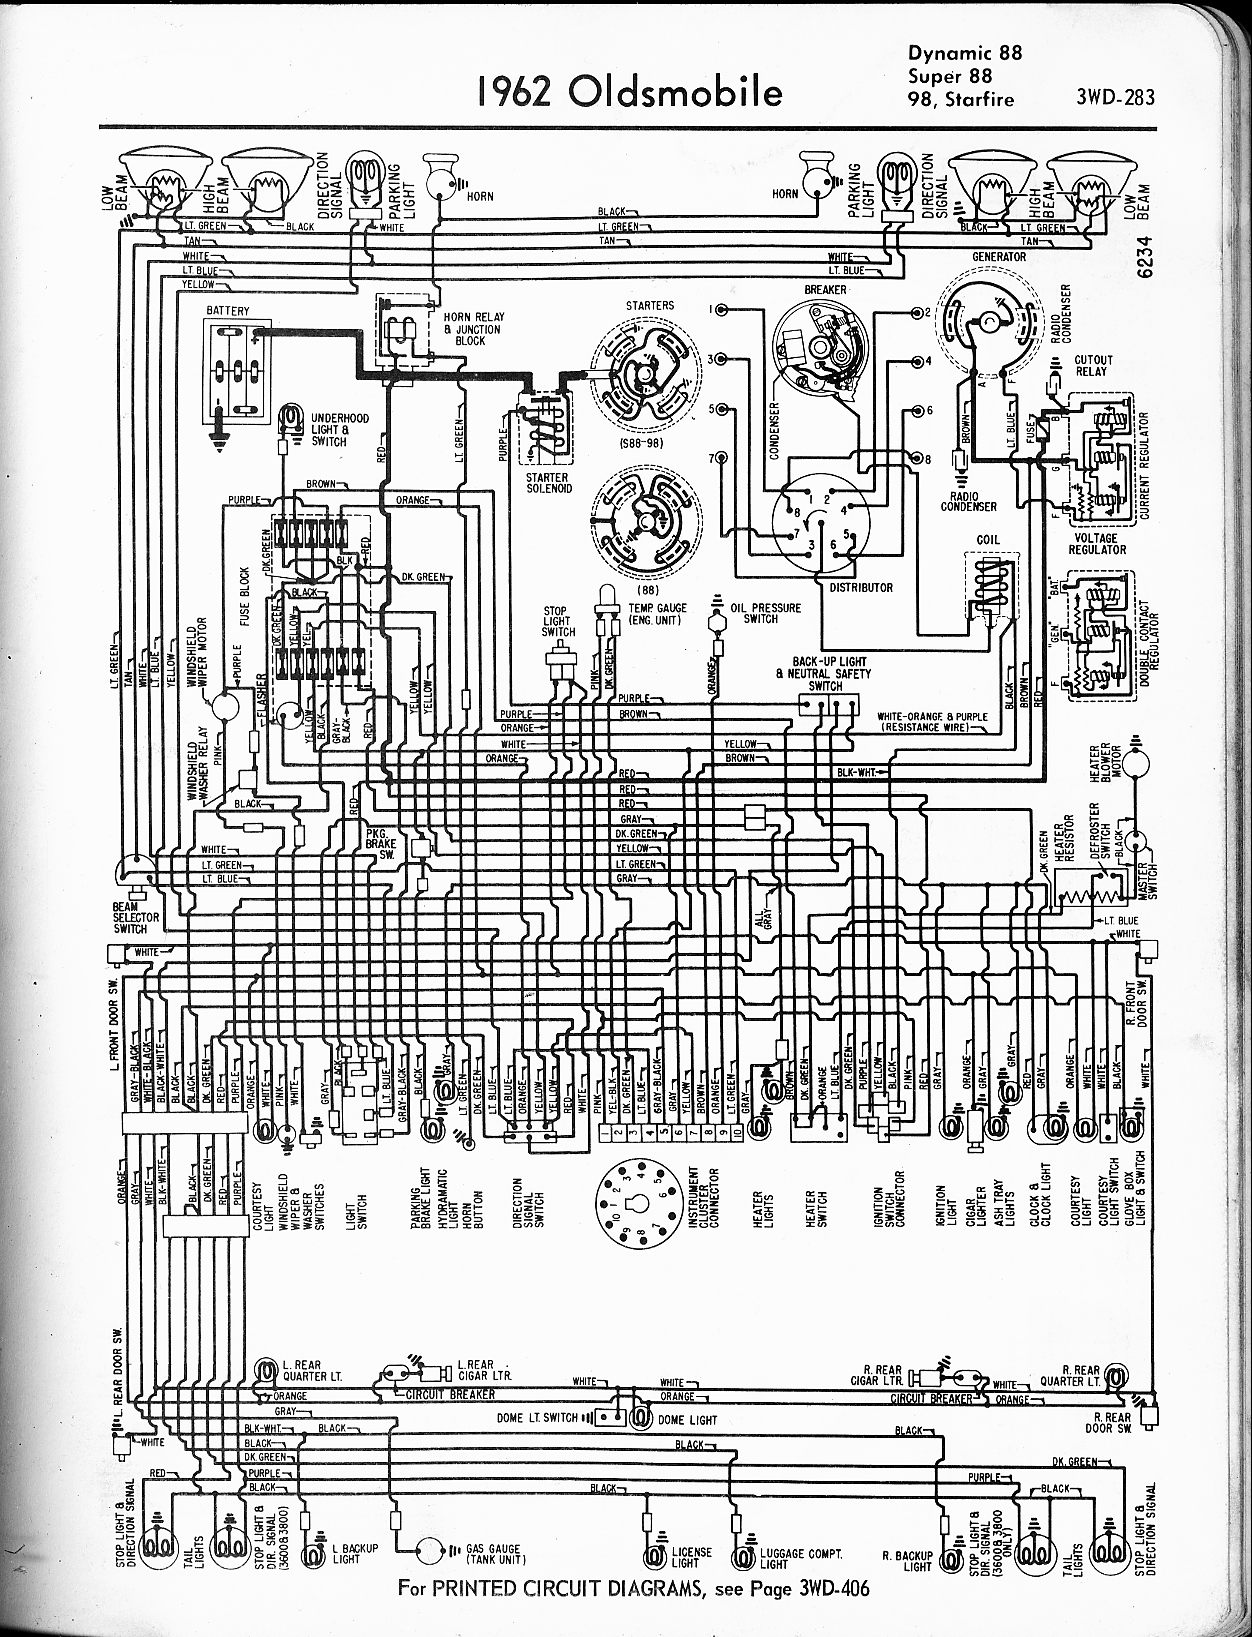 1956 Oldsmobile Wiring Diagram Wiring Diagram Data 1996 Oldsmobile 88 Wiring -Diagram 1957 Oldsmobile Wiring Diagram